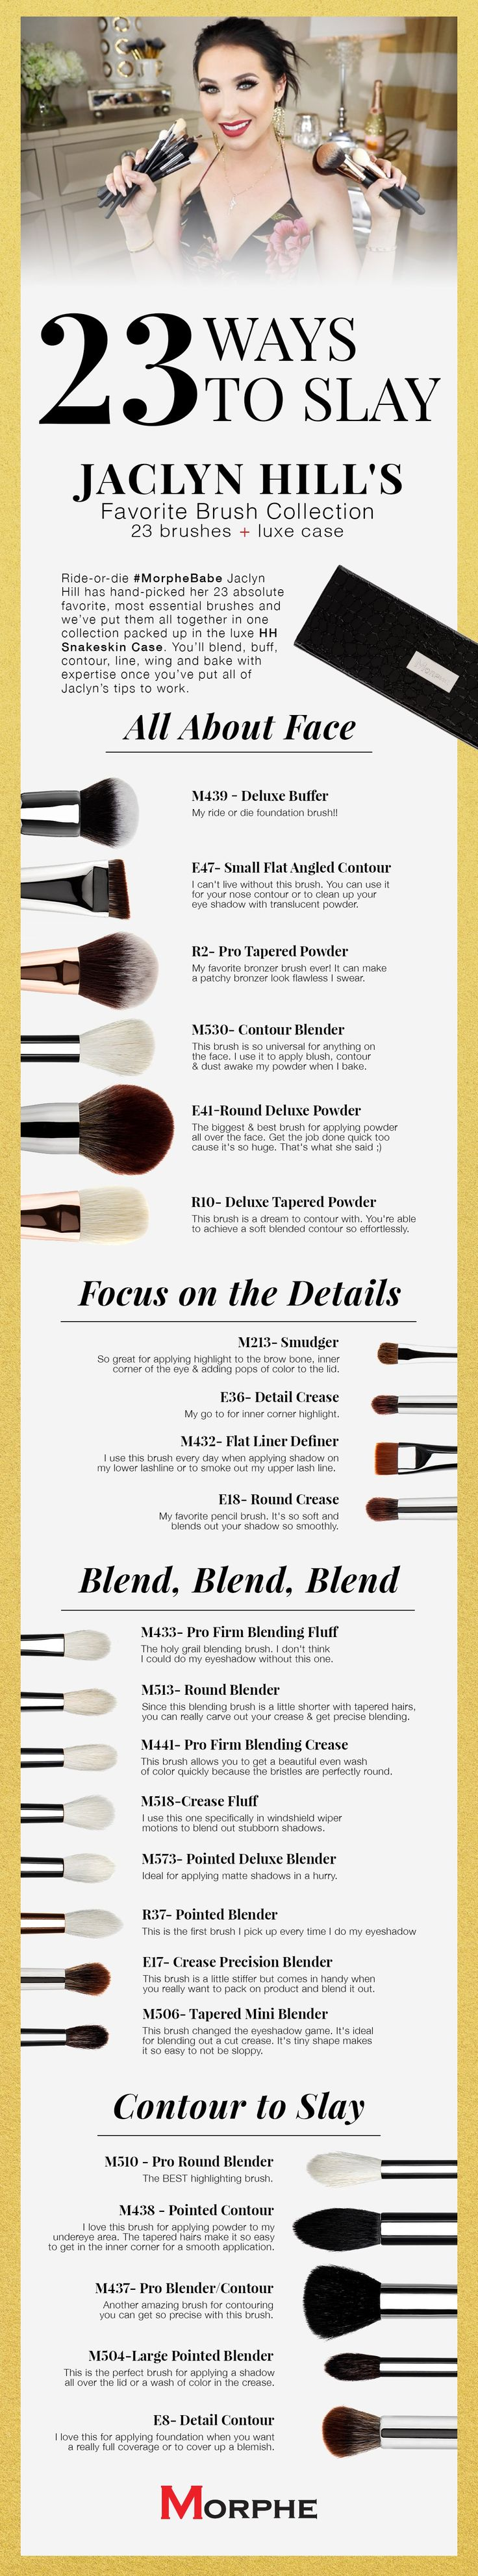 JACLYN HILL'S FAVORITE BRUSH COLLECTION Artistry makeup